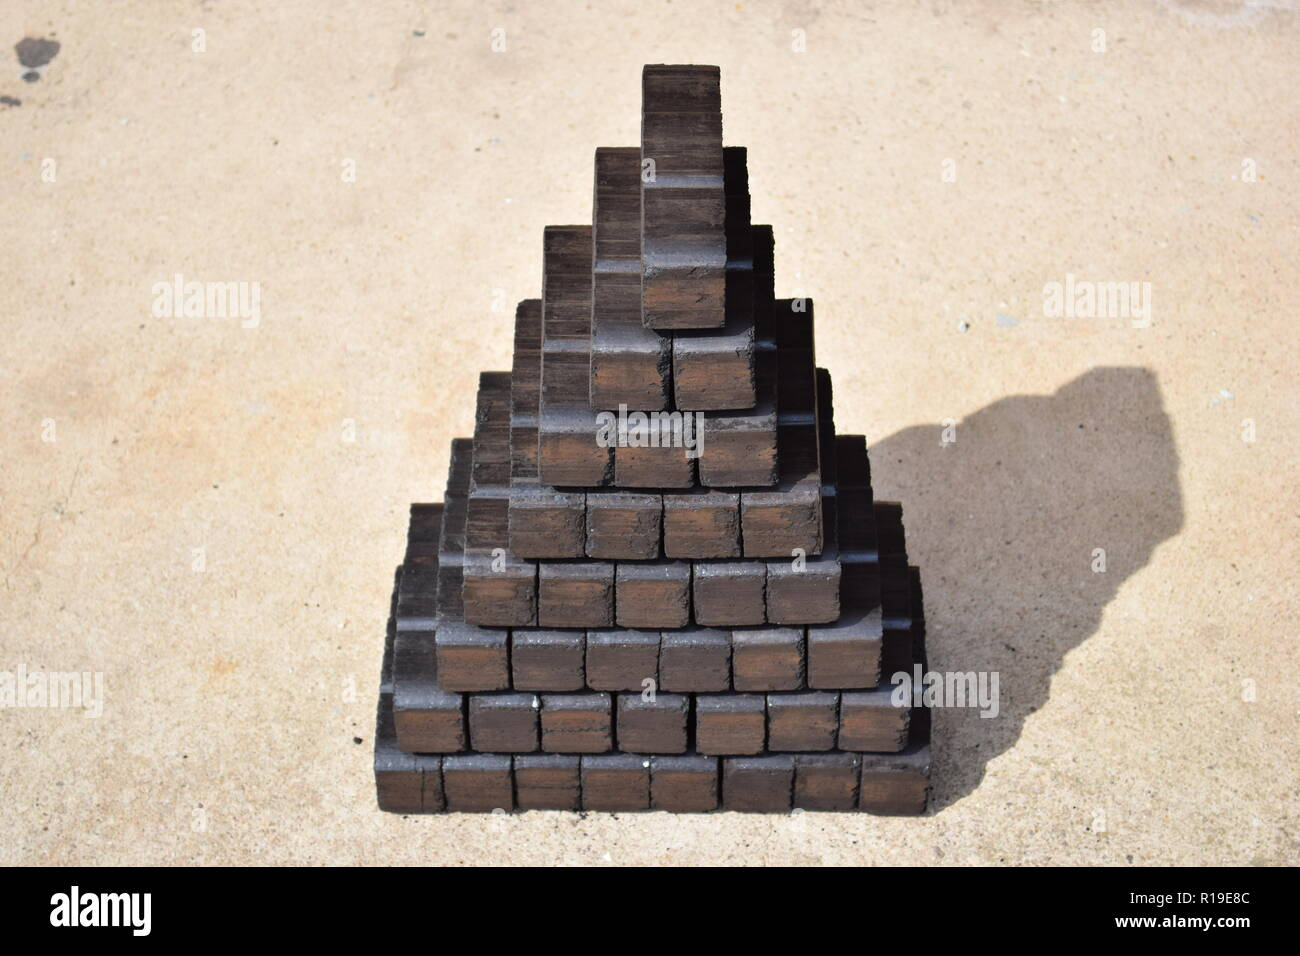 Brown coal briquette stockpile as an alternate heating source for fireplace or even for an solid fuel oven heating the whole house. - Stock Image